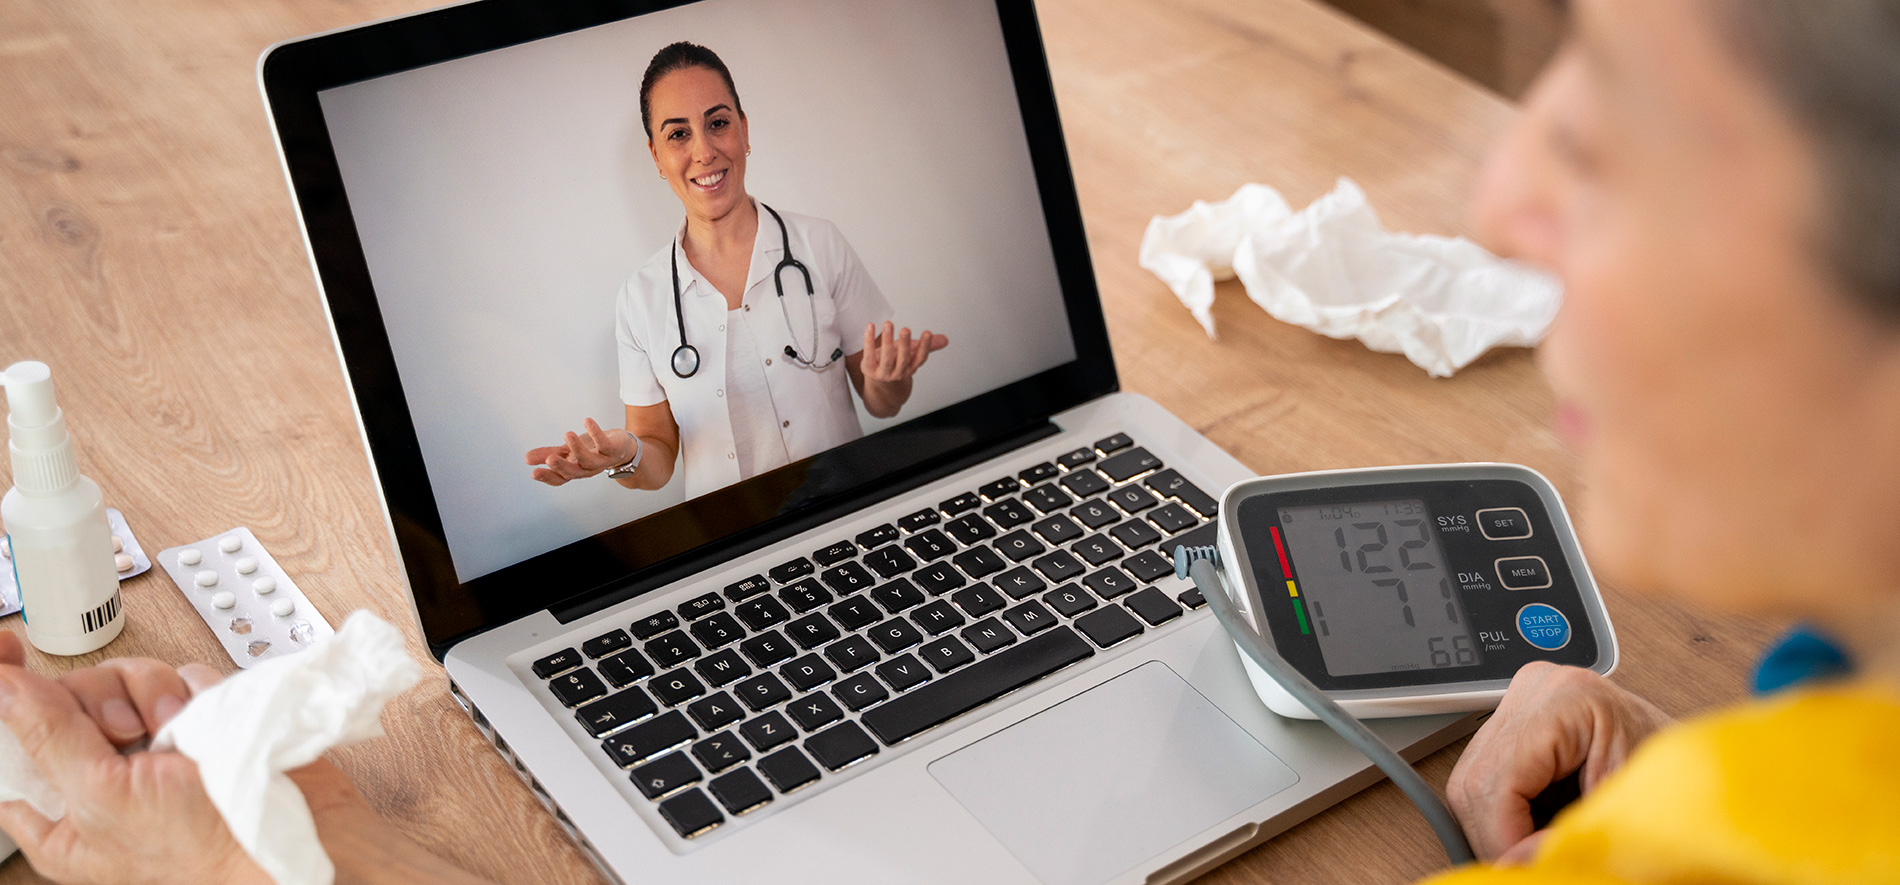 Global Healthcare Trends - Telemedicine